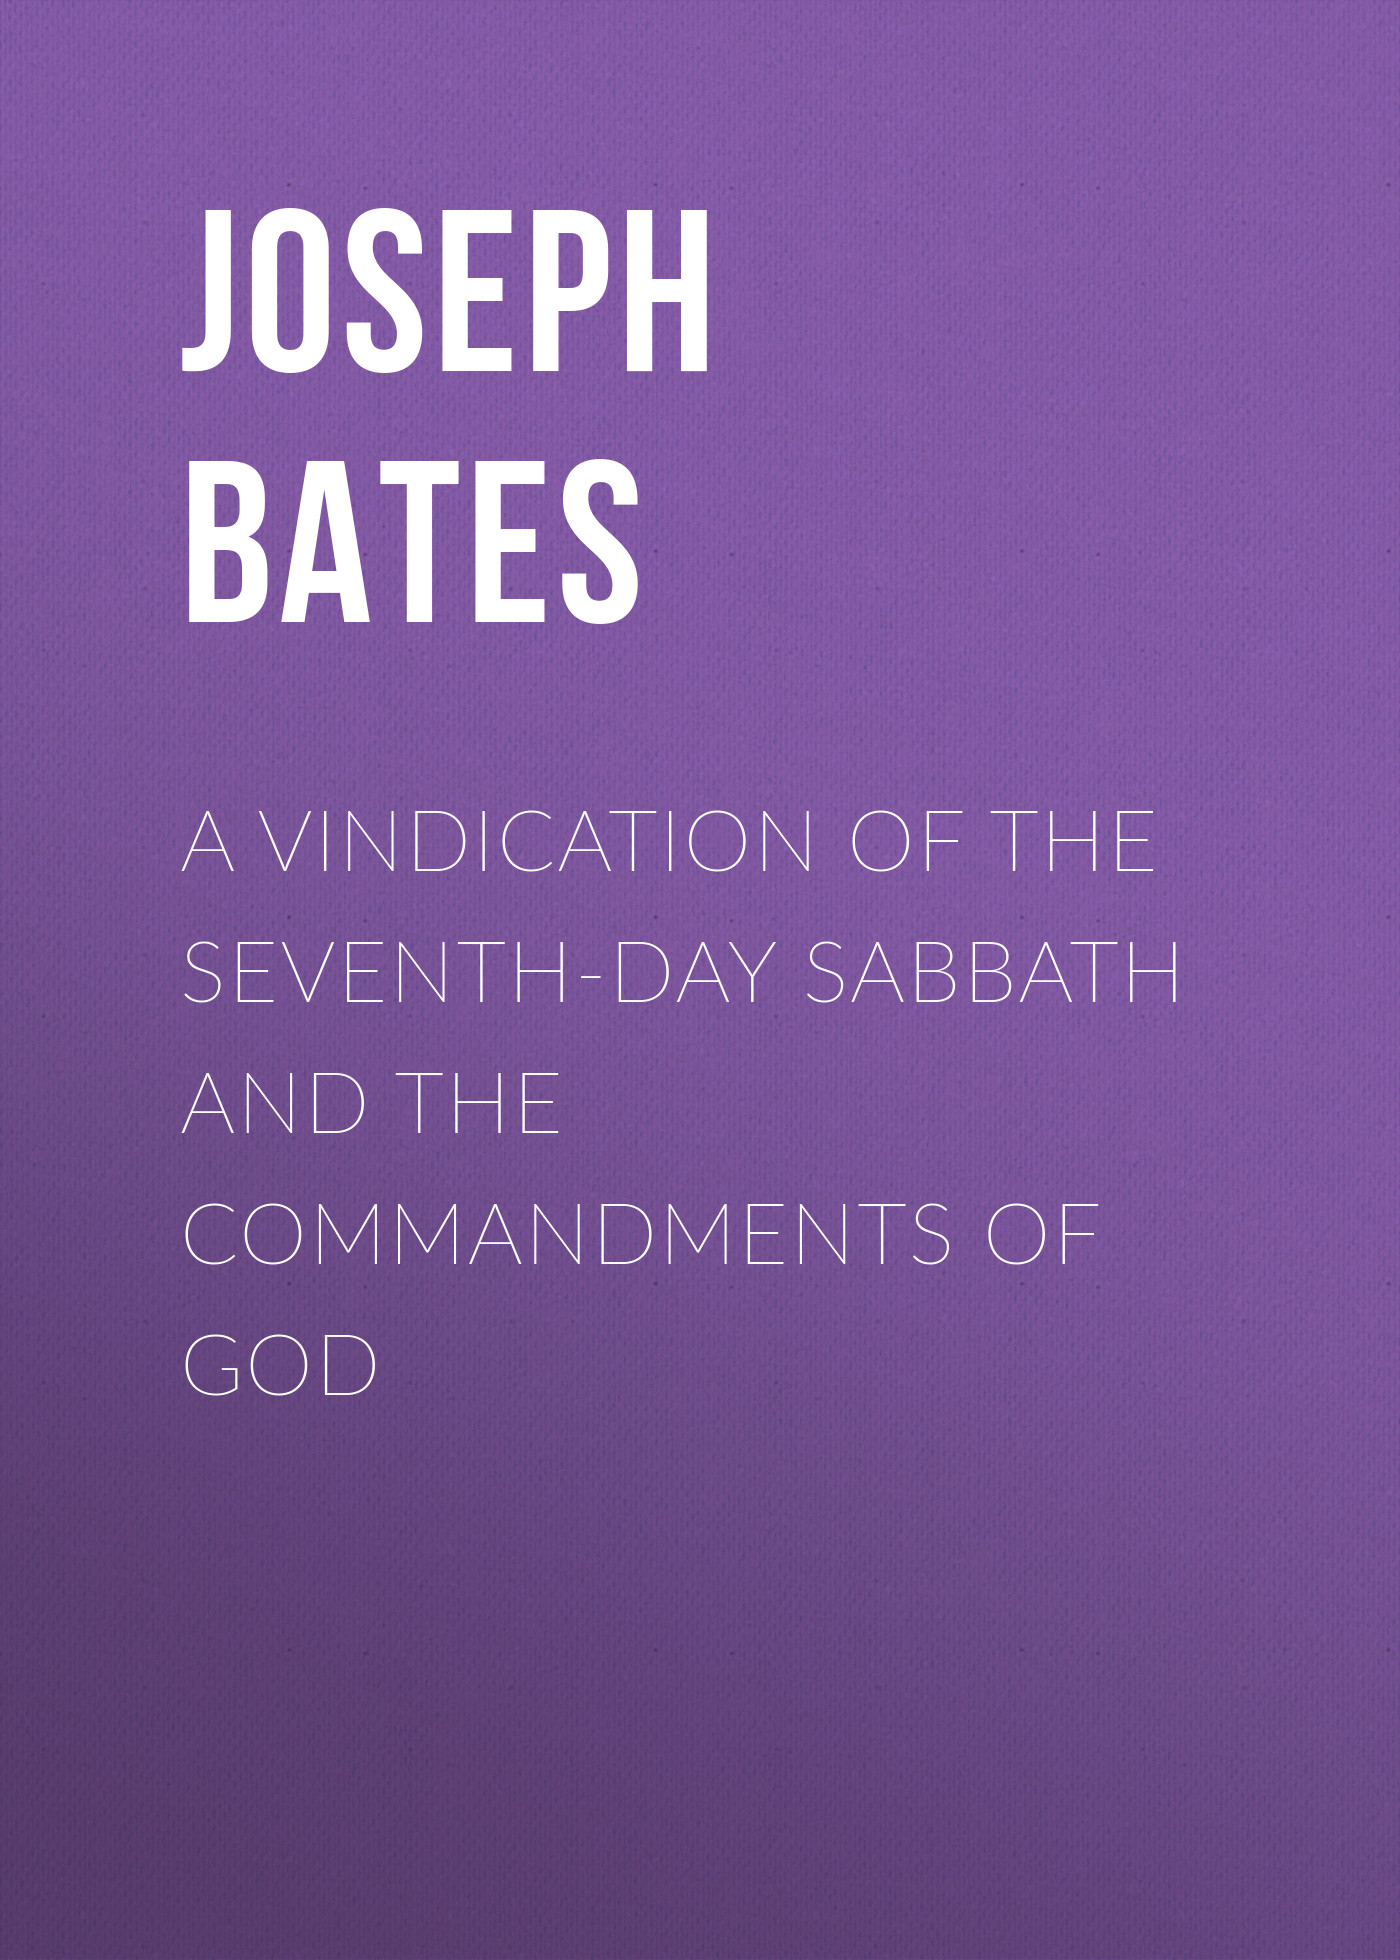 Joseph Bates A Vindication of the Seventh-Day Sabbath and the Commandments of God the eye of god